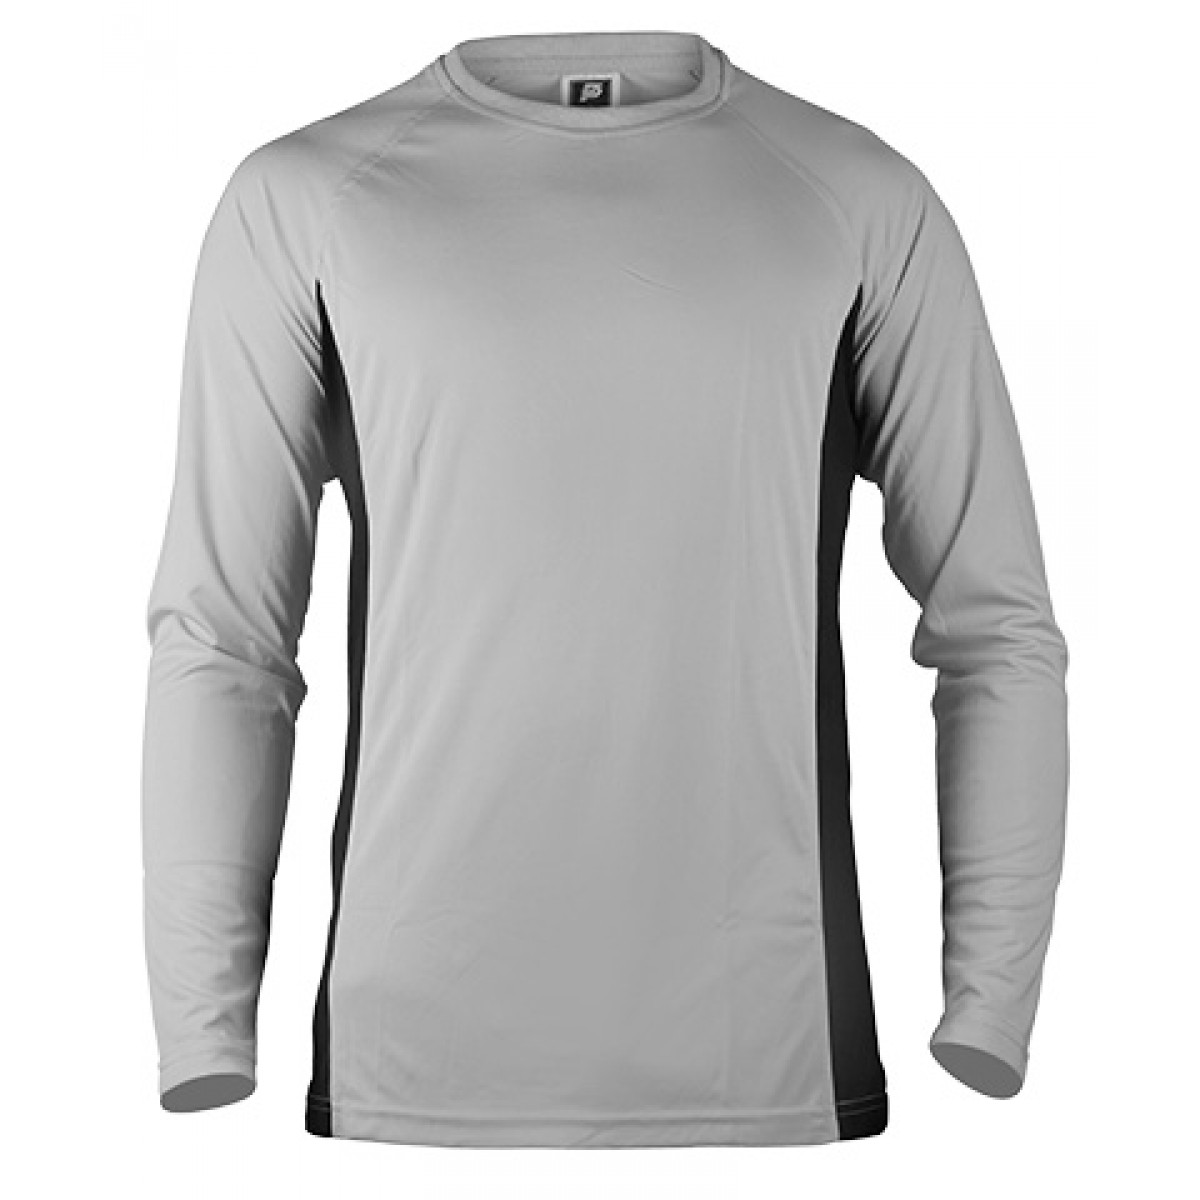 Long Sleeves Performance With Side Insert-Gray/Black-S